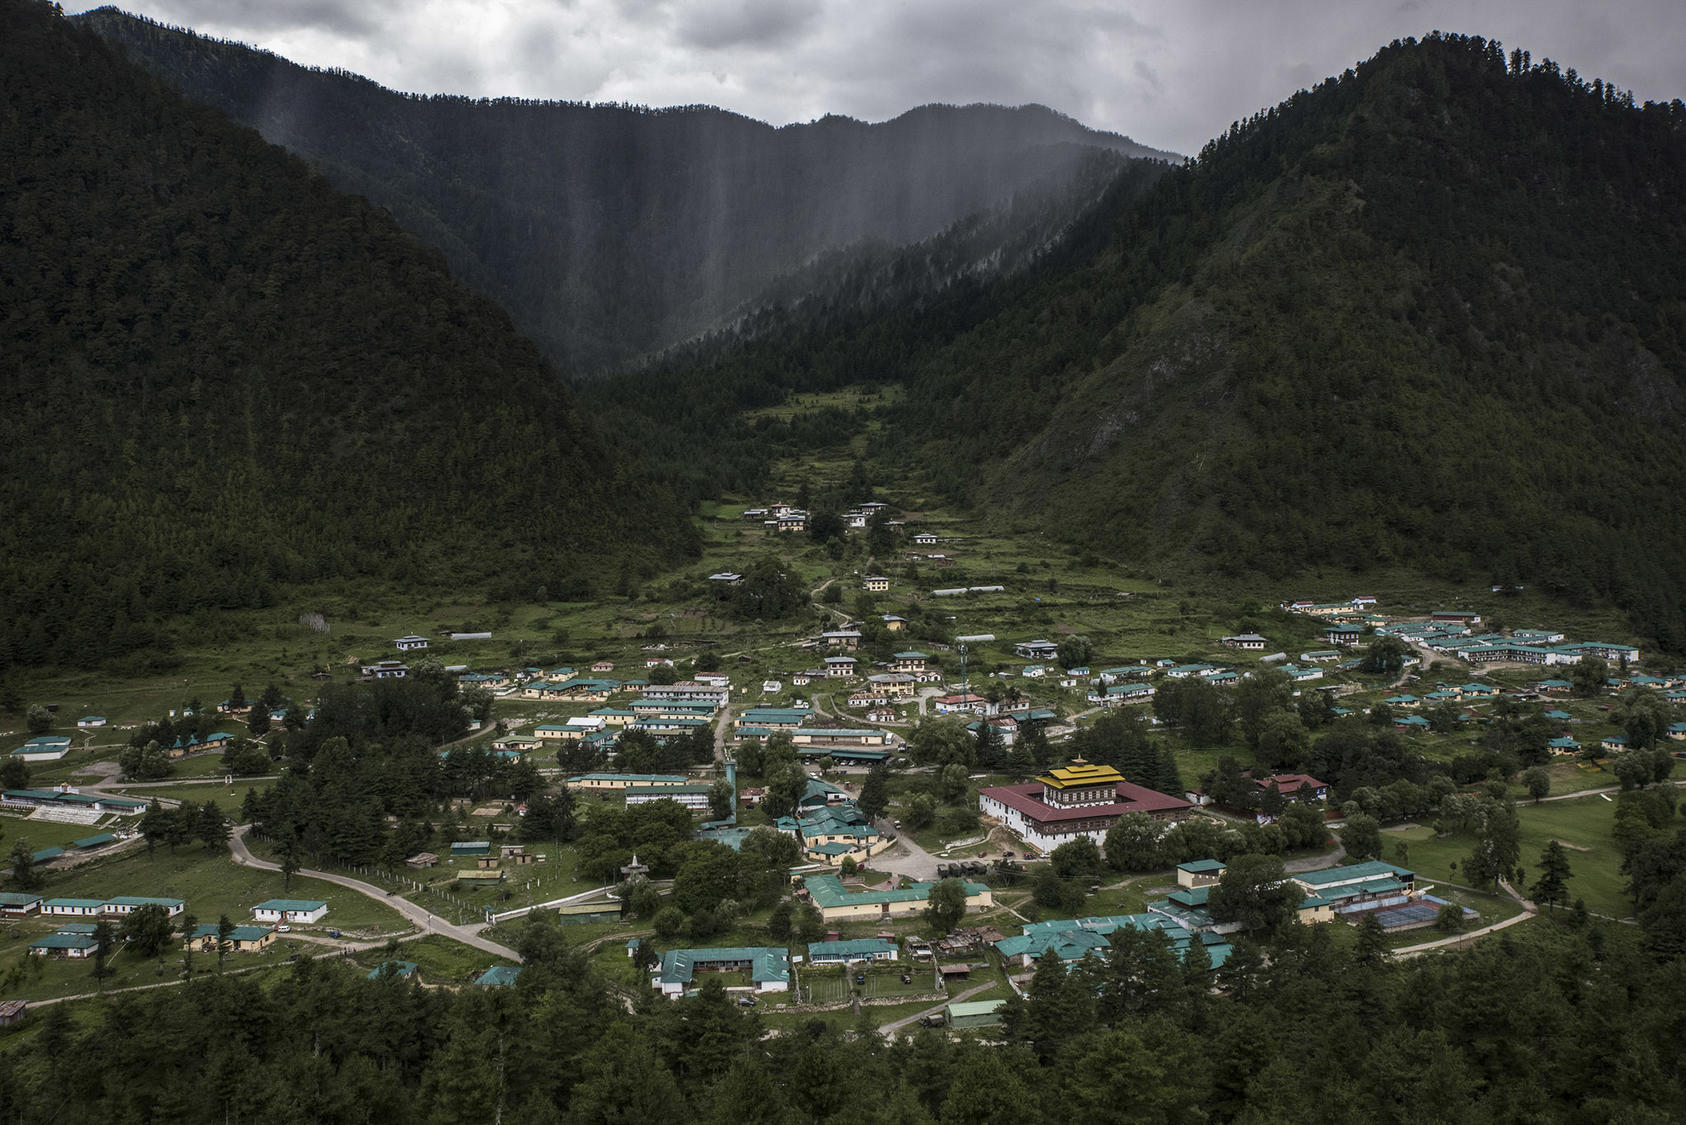 A regional headquarters for India's military in Haa, Bhutan, near a border area claimed by both India and China, Aug. 3, 2017. (Gilles Sabrie/The New York Times)